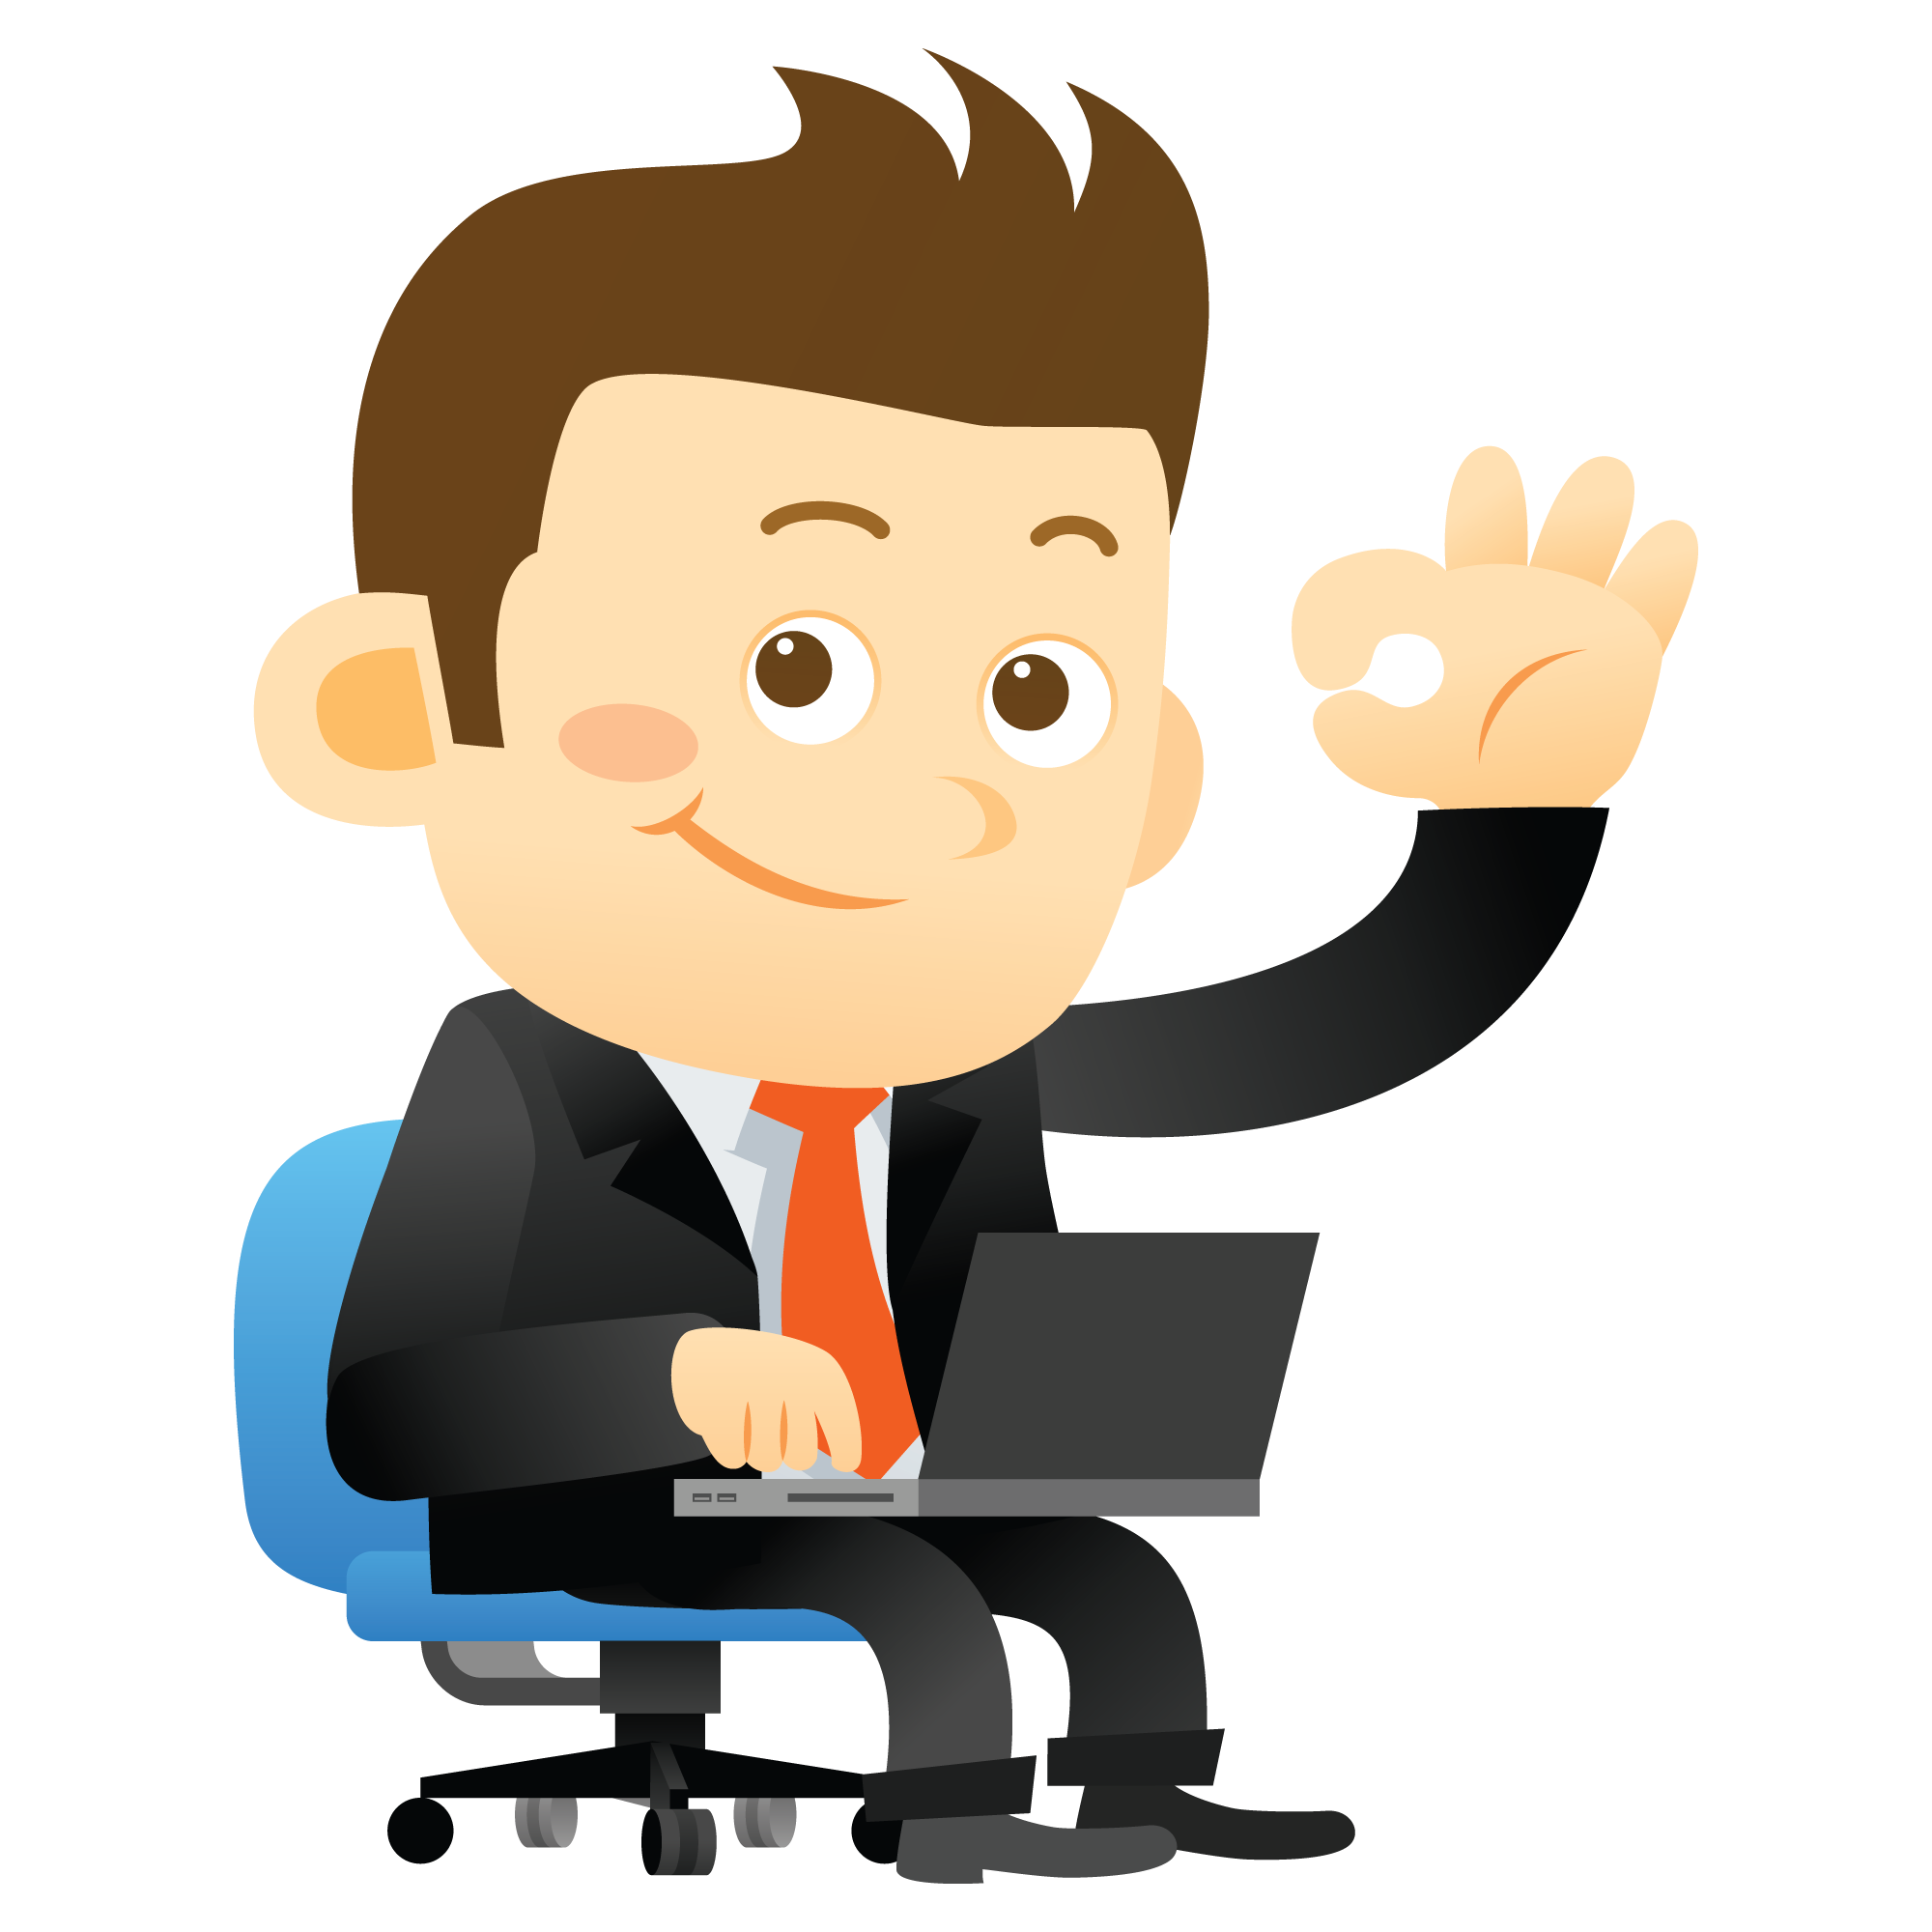 Work clipart transparent. Png images free download